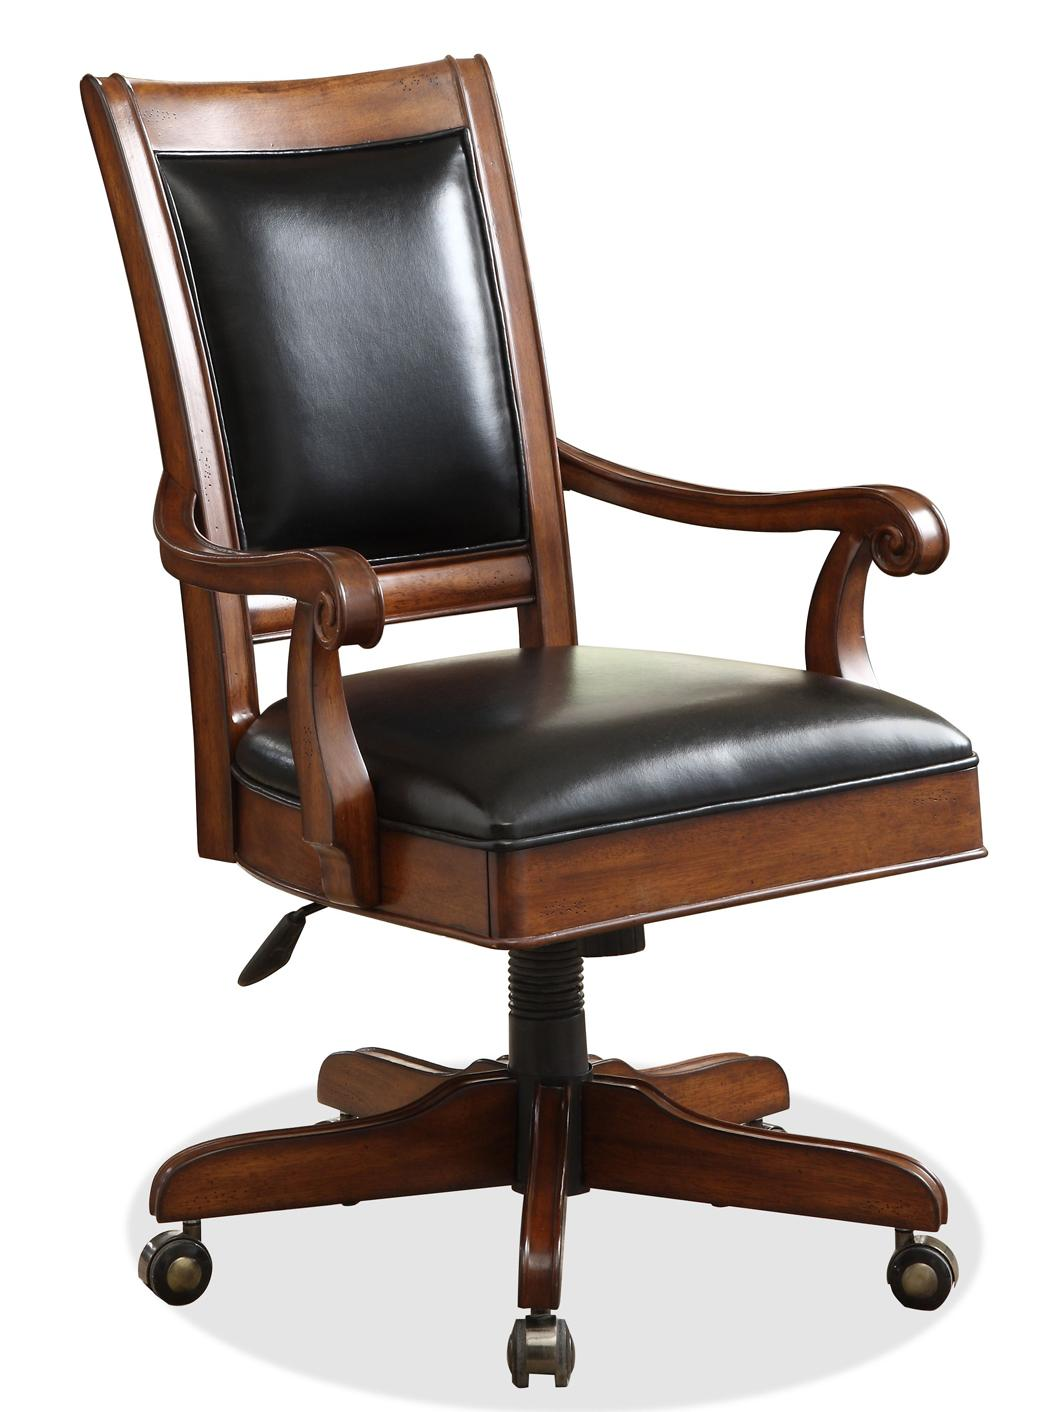 Caster Equipped Wooden Desk Chair with Leather Covered Seat  sc 1 st  Wolf Furniture & Caster Equipped Wooden Desk Chair with Leather Covered Seat by ...